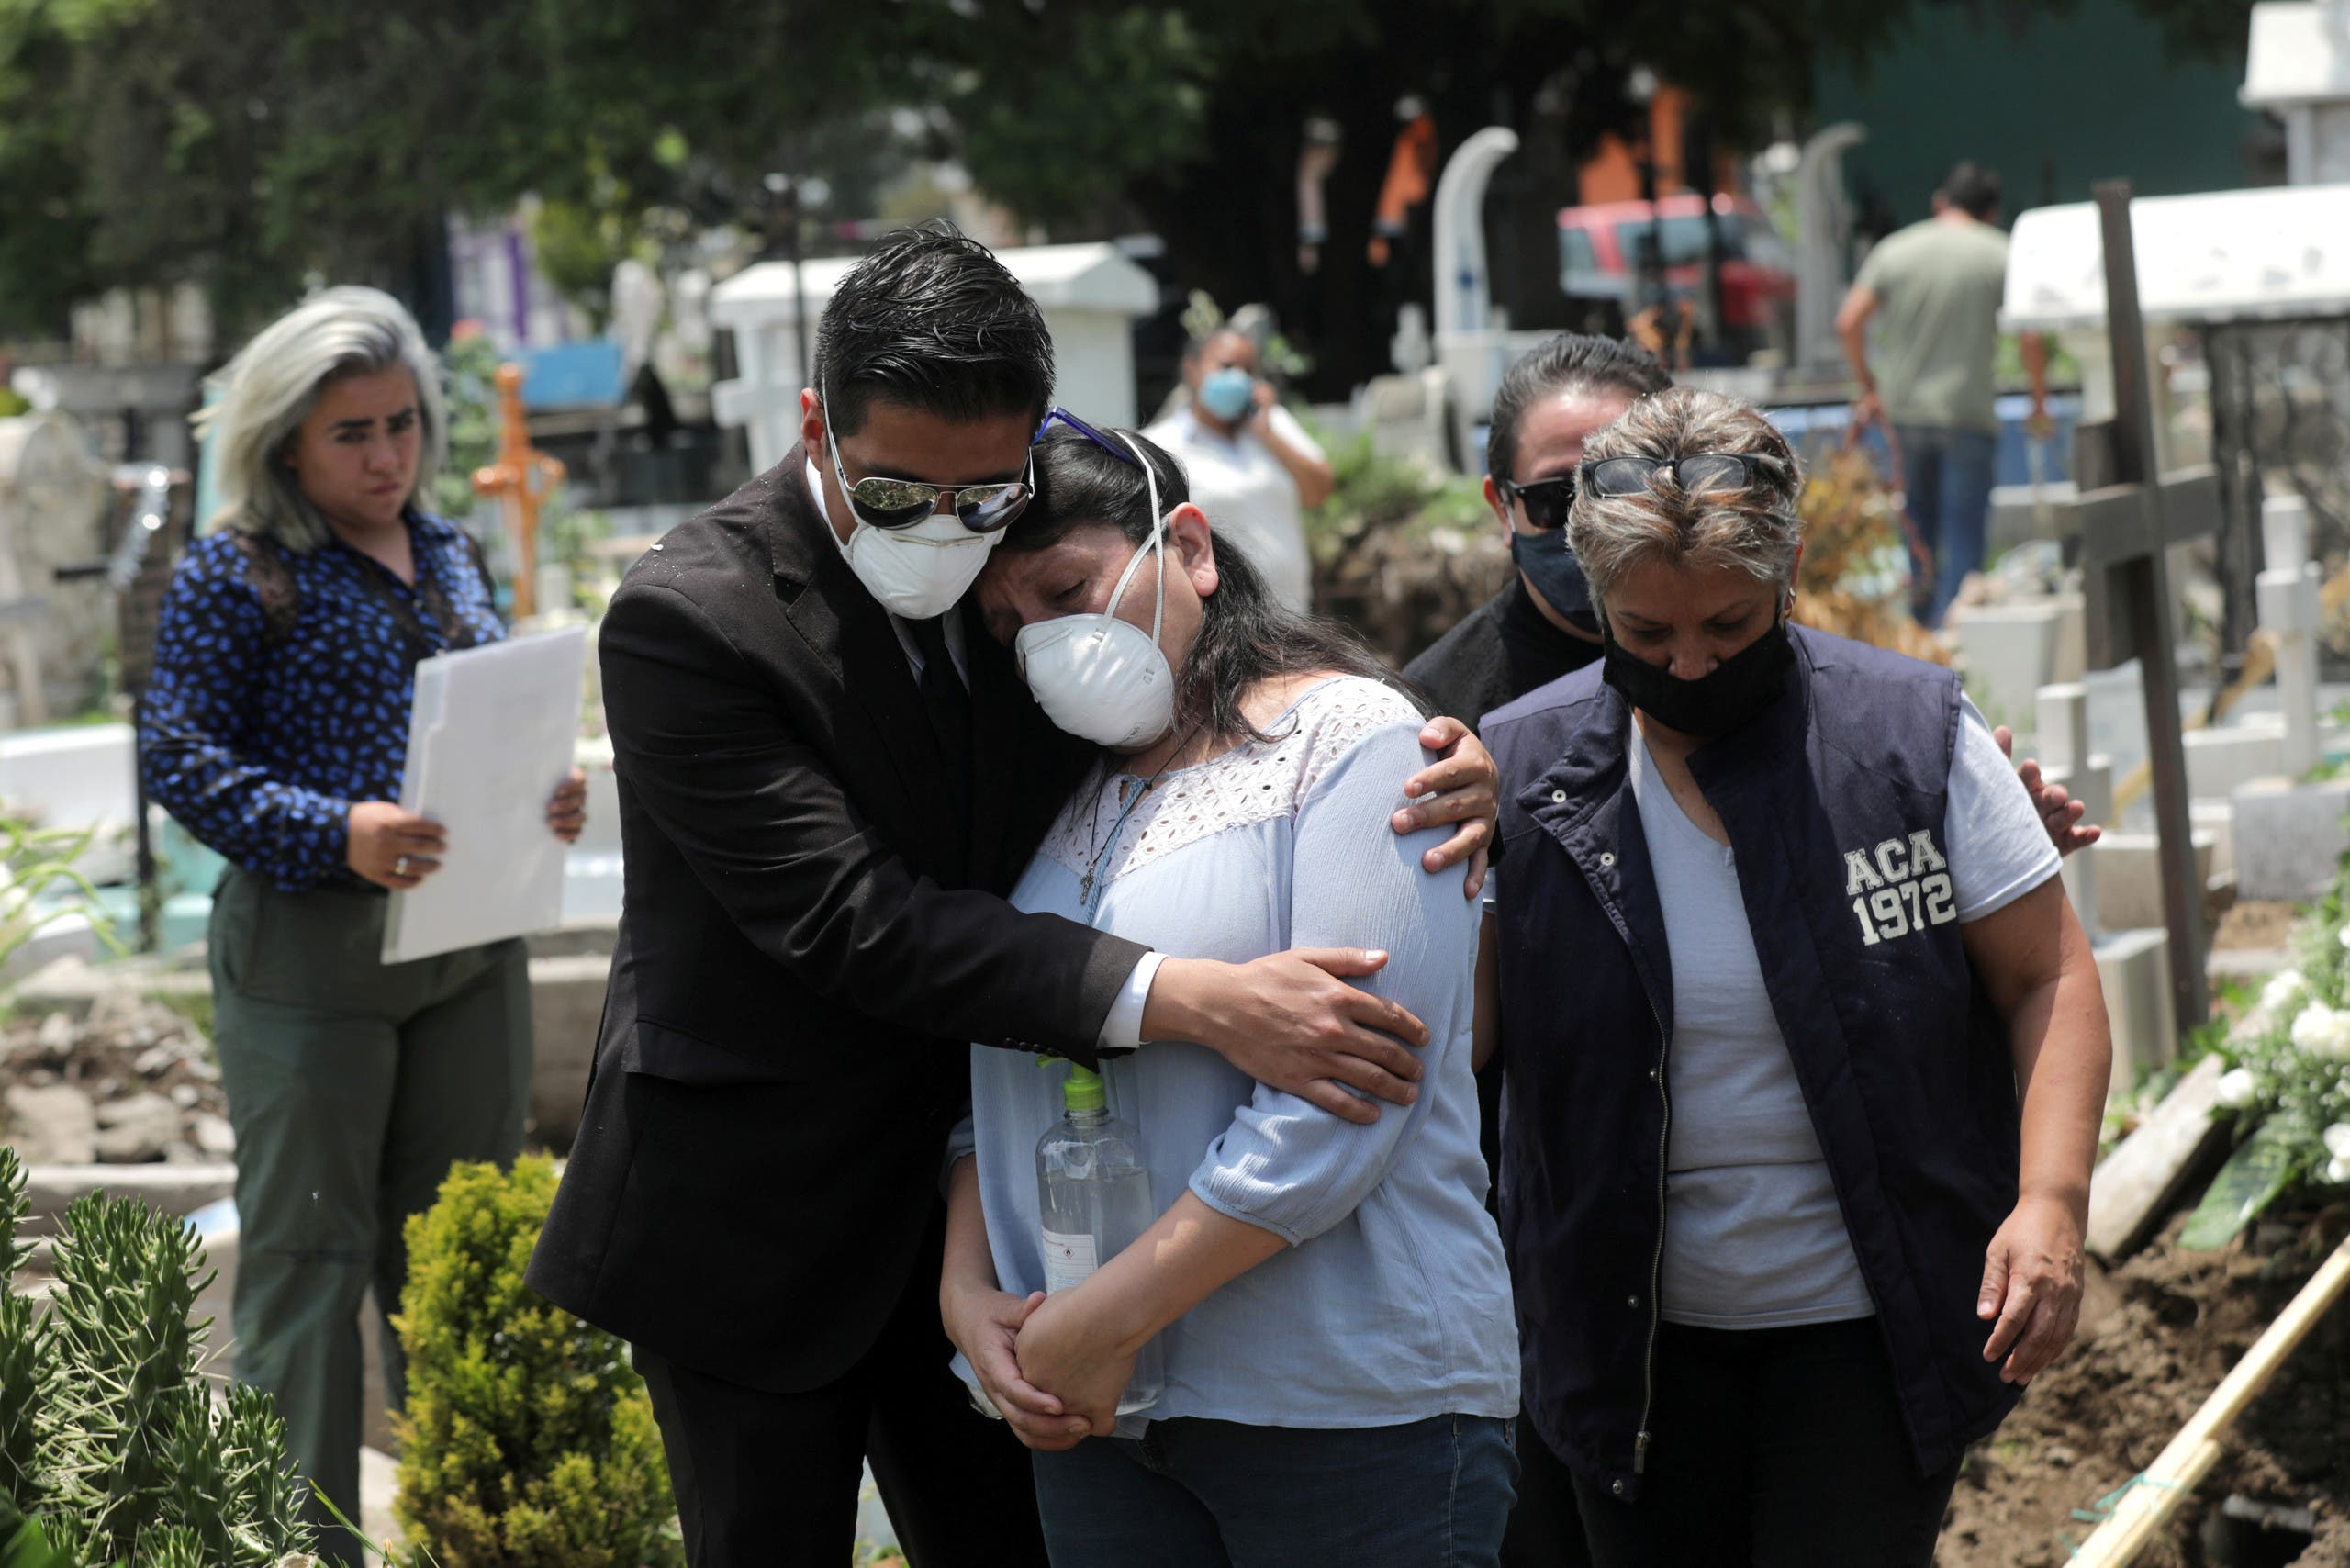 Relatives react near the coffin of a man, during his funeral at the local cemetery, as the coronavirus disease (COVID-19) outbreak continues in Mexico City, Mexico, August 6, 2020. (Reuters)